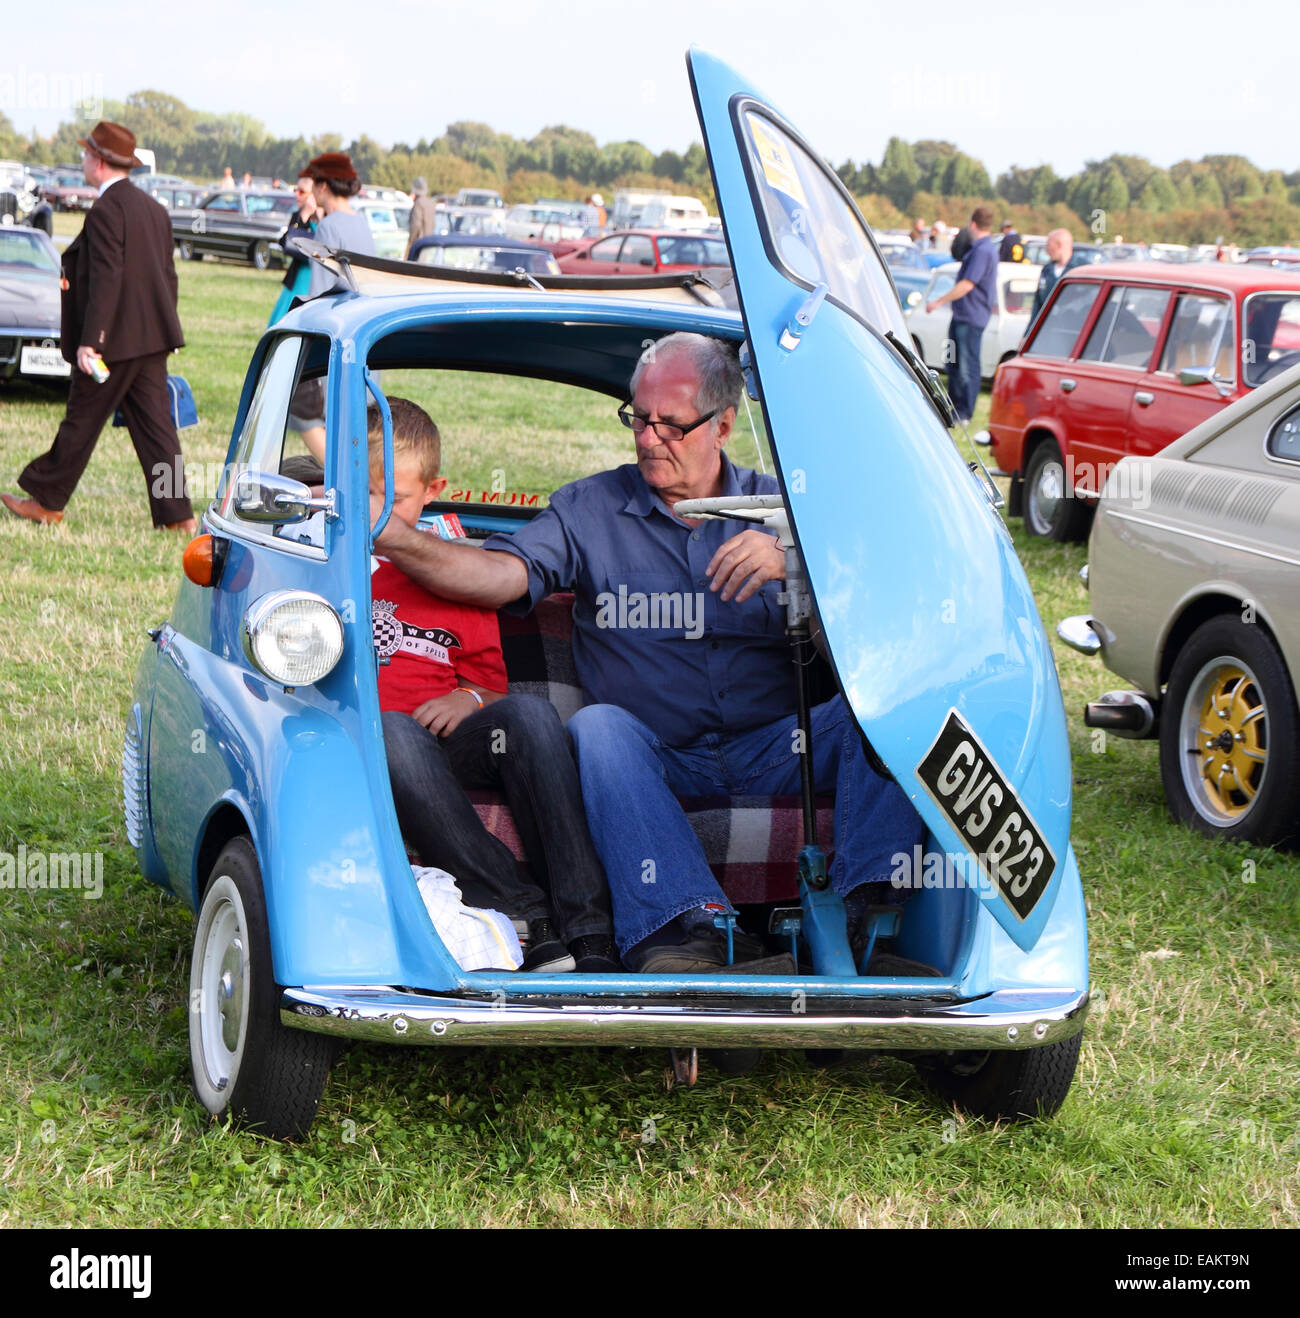 1960s Bubble Car Stock Photos & 1960s Bubble Car Stock Images - Alamy